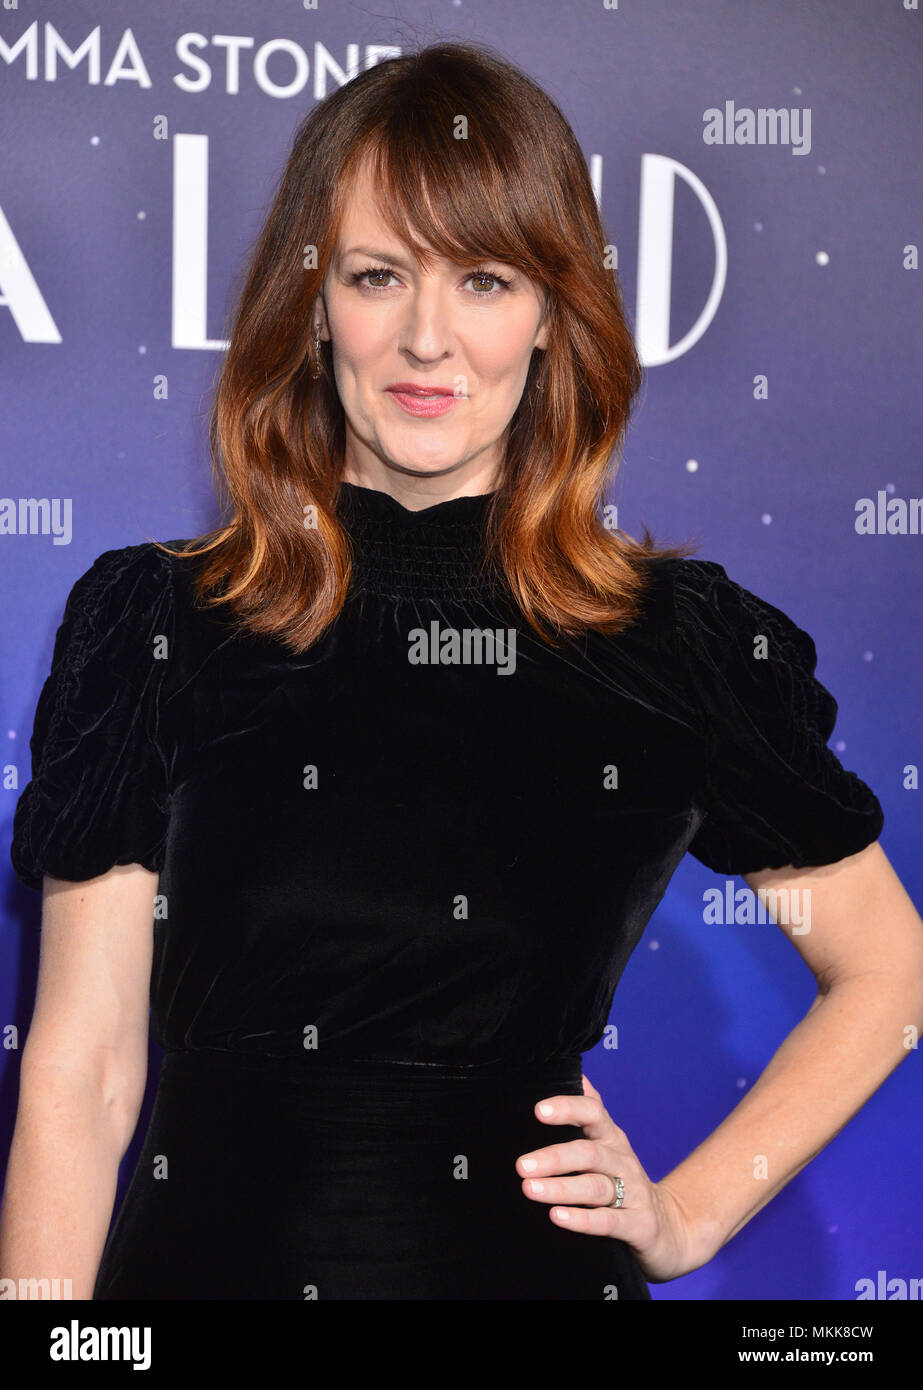 Rosemarie Dewitt 118 At The La La Land Premiere At The Westwood Village In Los Angeles December 6th 2016 Rosemarie Dewitt 118 Event In Hollywood Life California Red Carpet Event Vertical Usa